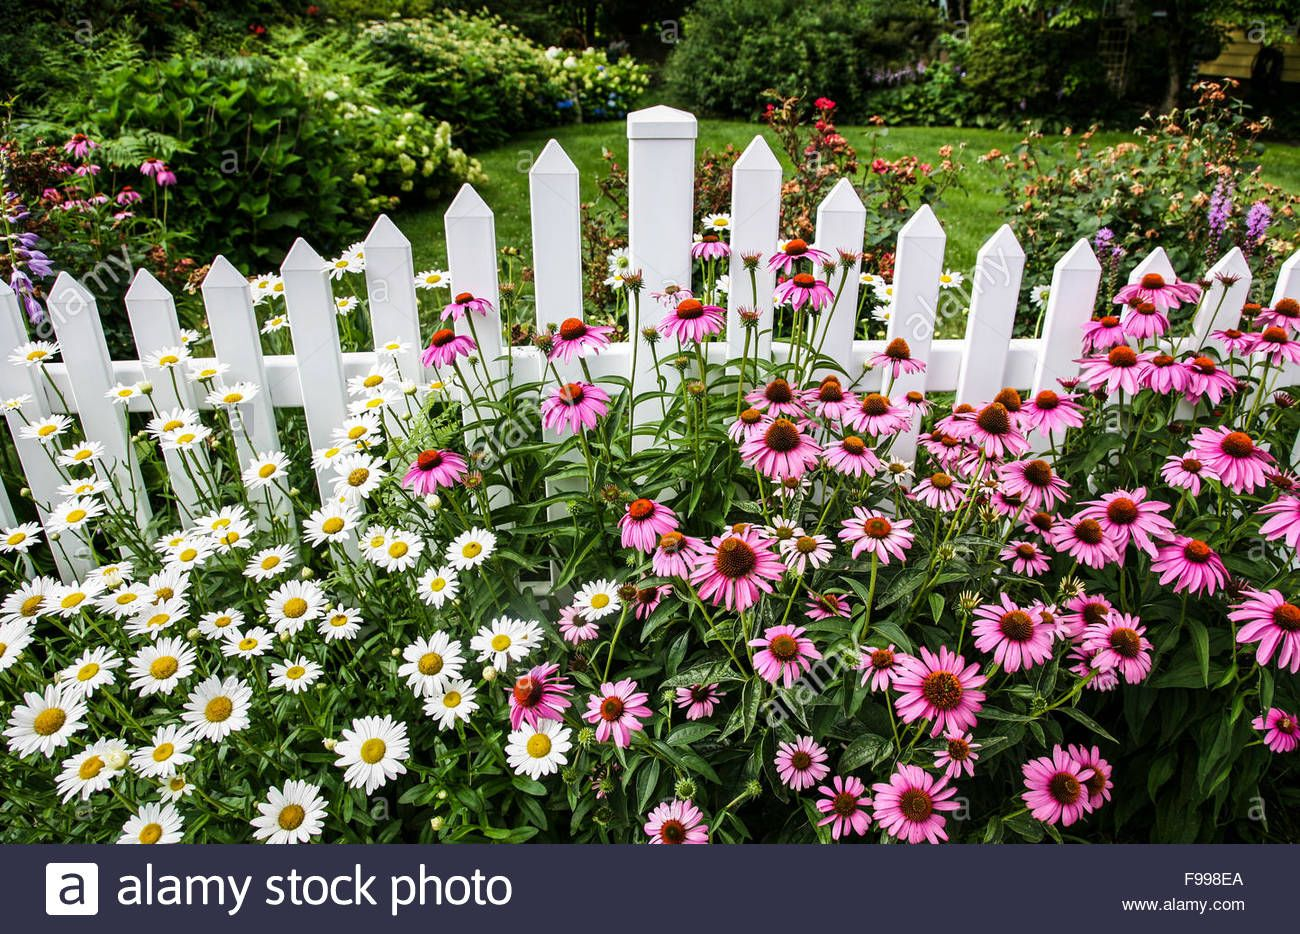 English Garden Border With Purple Cone Flowers Daisies Along A